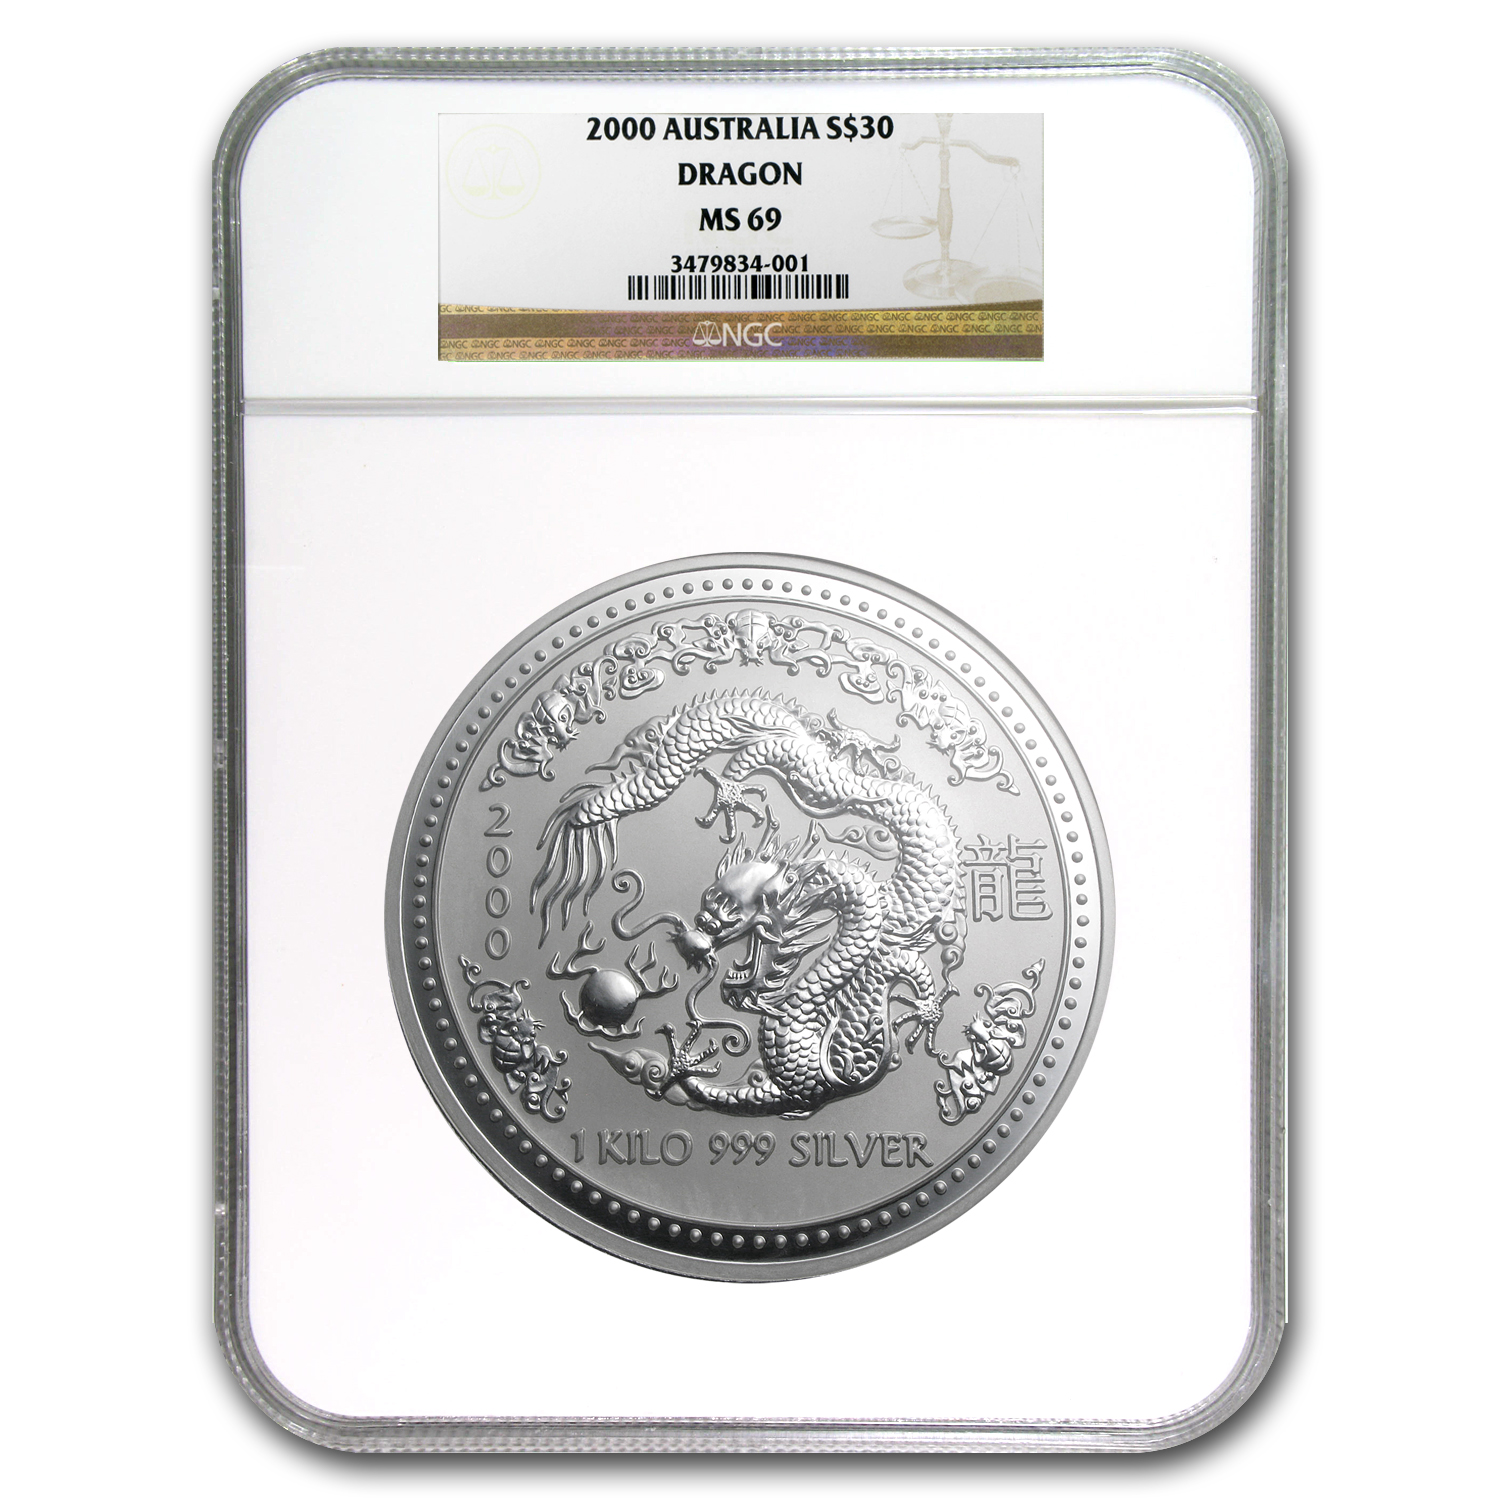 2000 Australia 1 kilo Silver Year of the Dragon MS-69 NGC